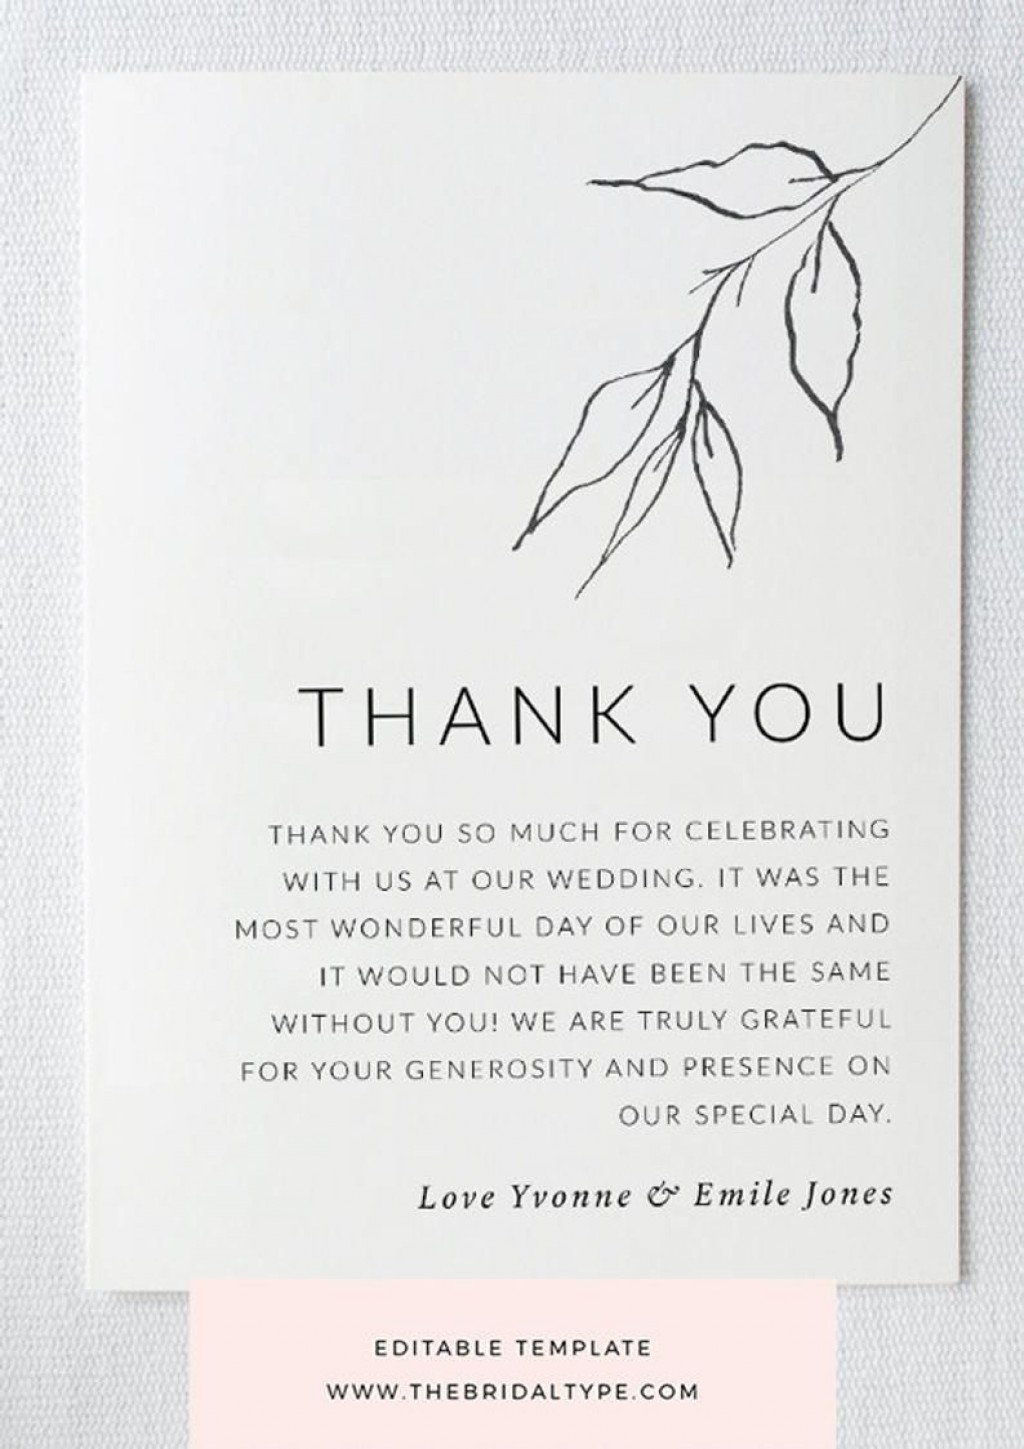 005 Incredible Thank You Card Template Wedding High Definition  Free Printable PublisherLarge